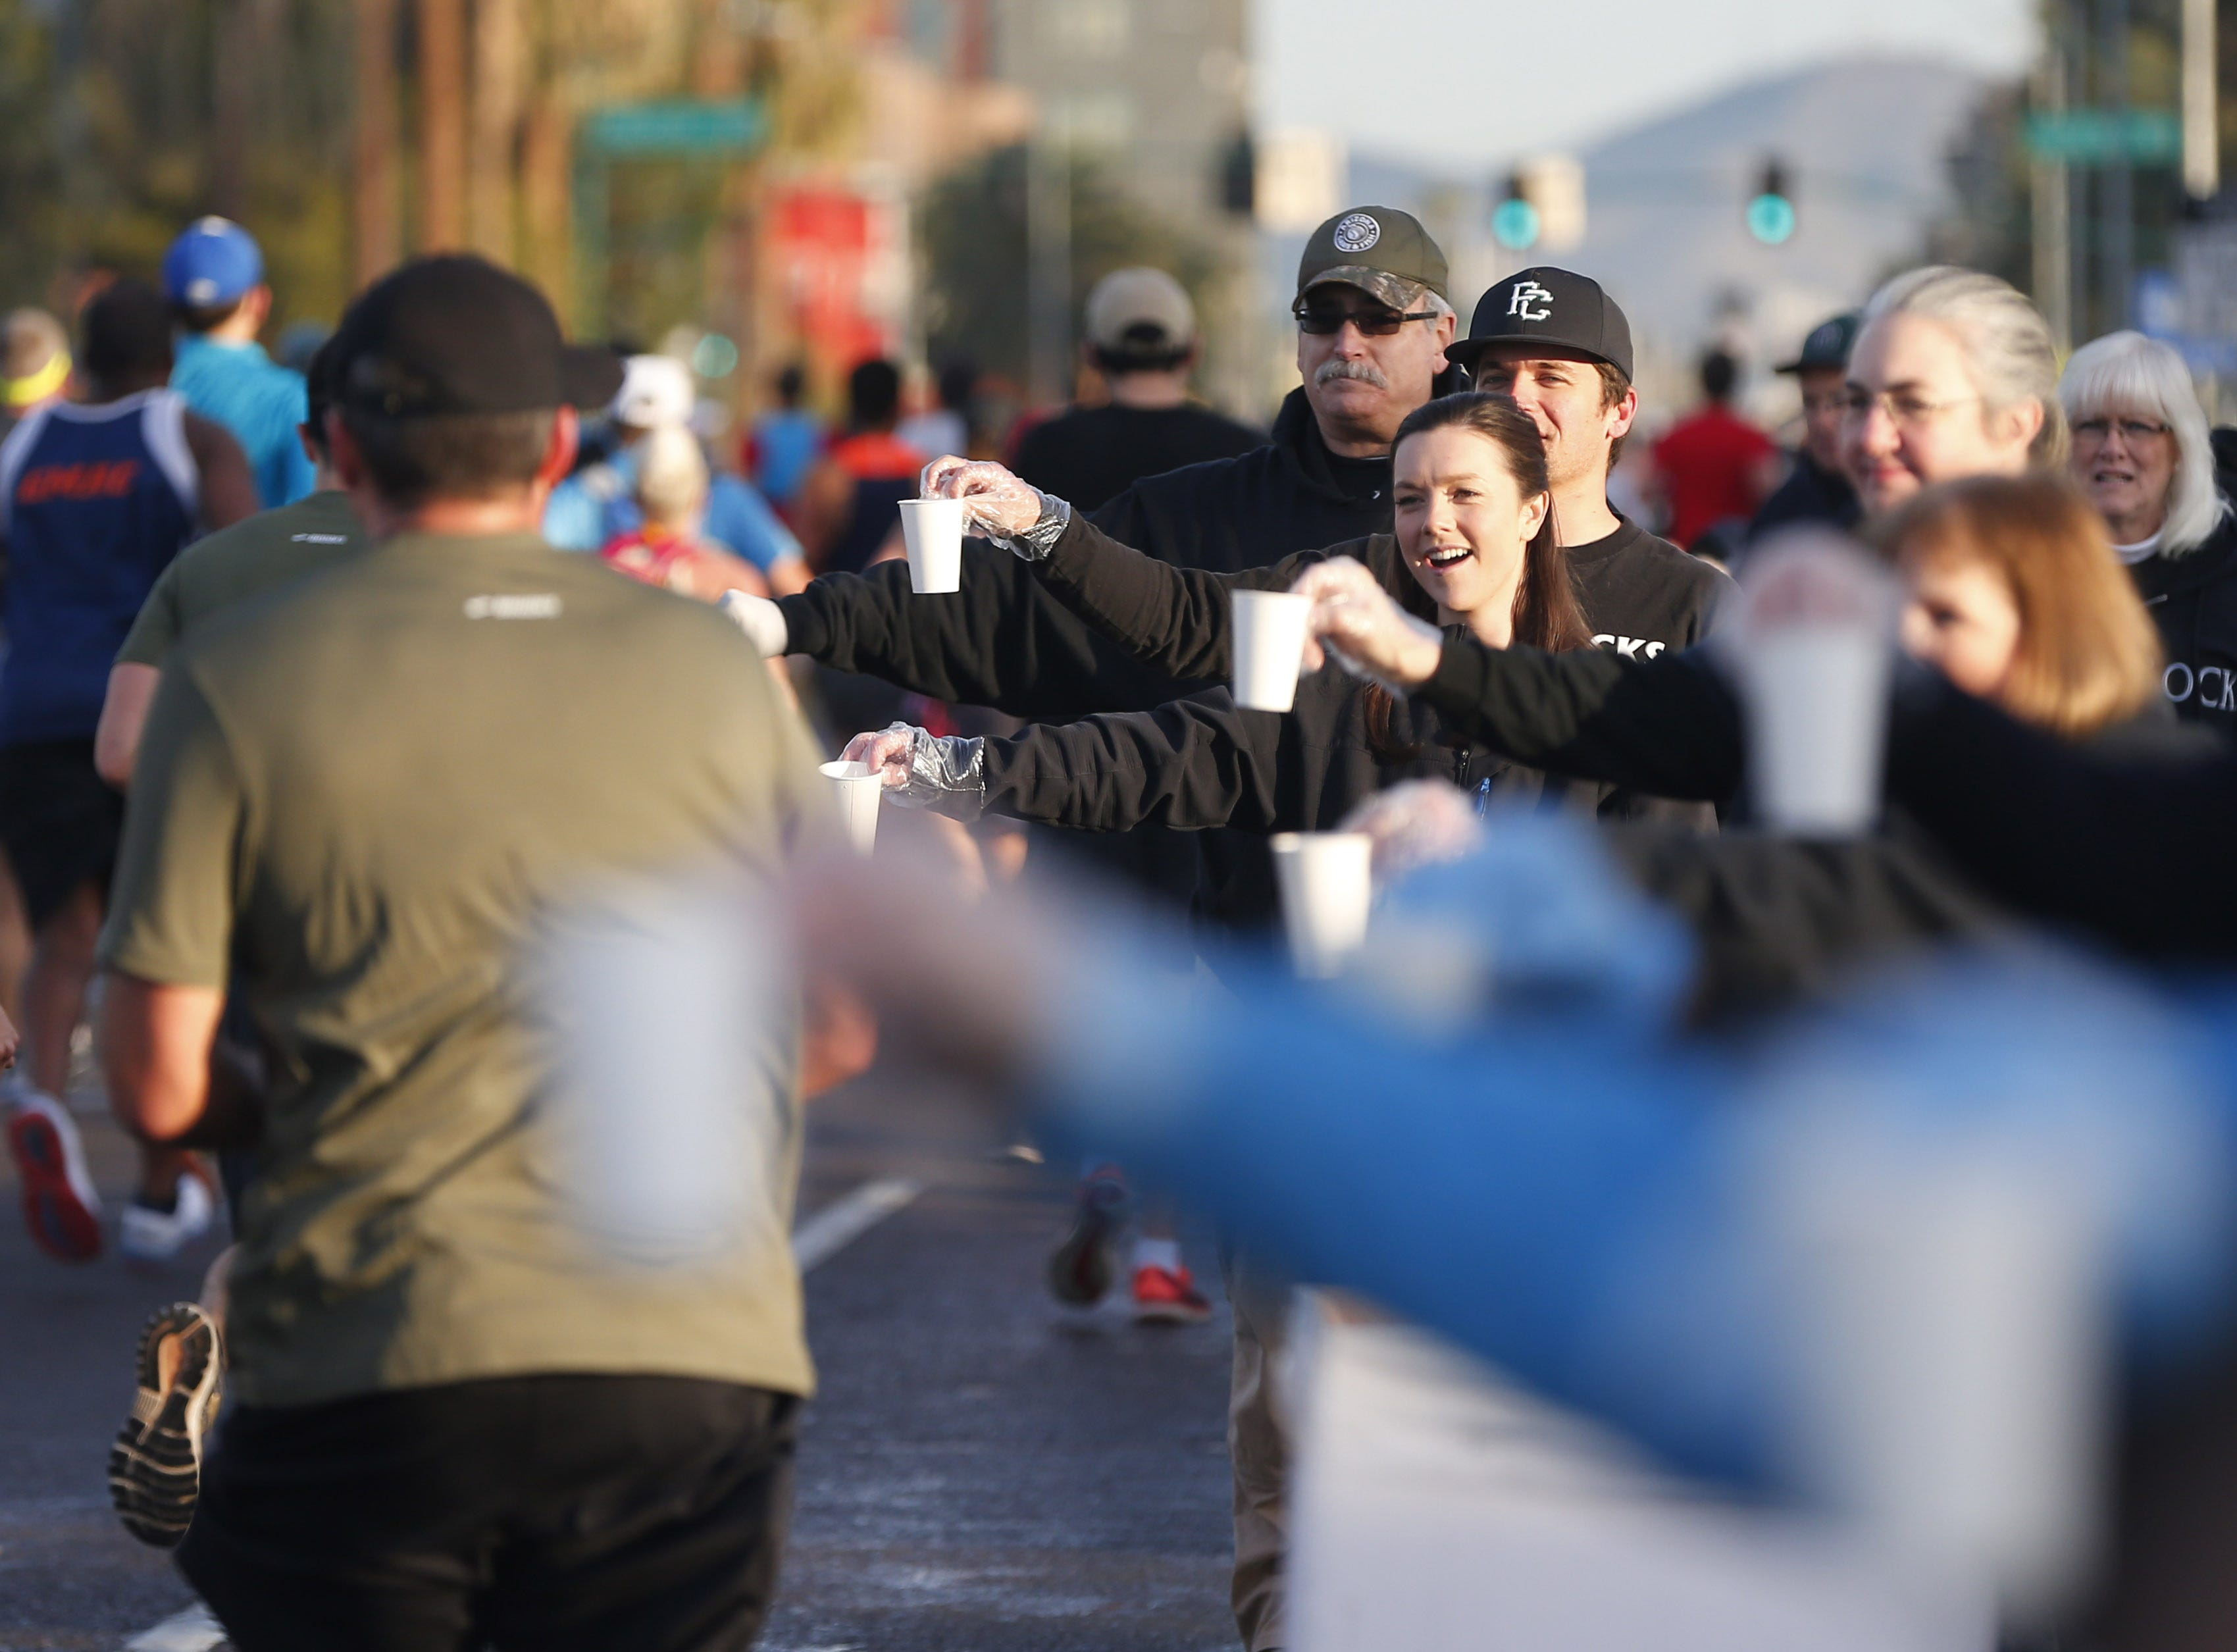 Volunteers offer water to runners on 7th Ave. during the Rock 'n' Roll Marathon in Phoenix, Jan. 20, 2019.